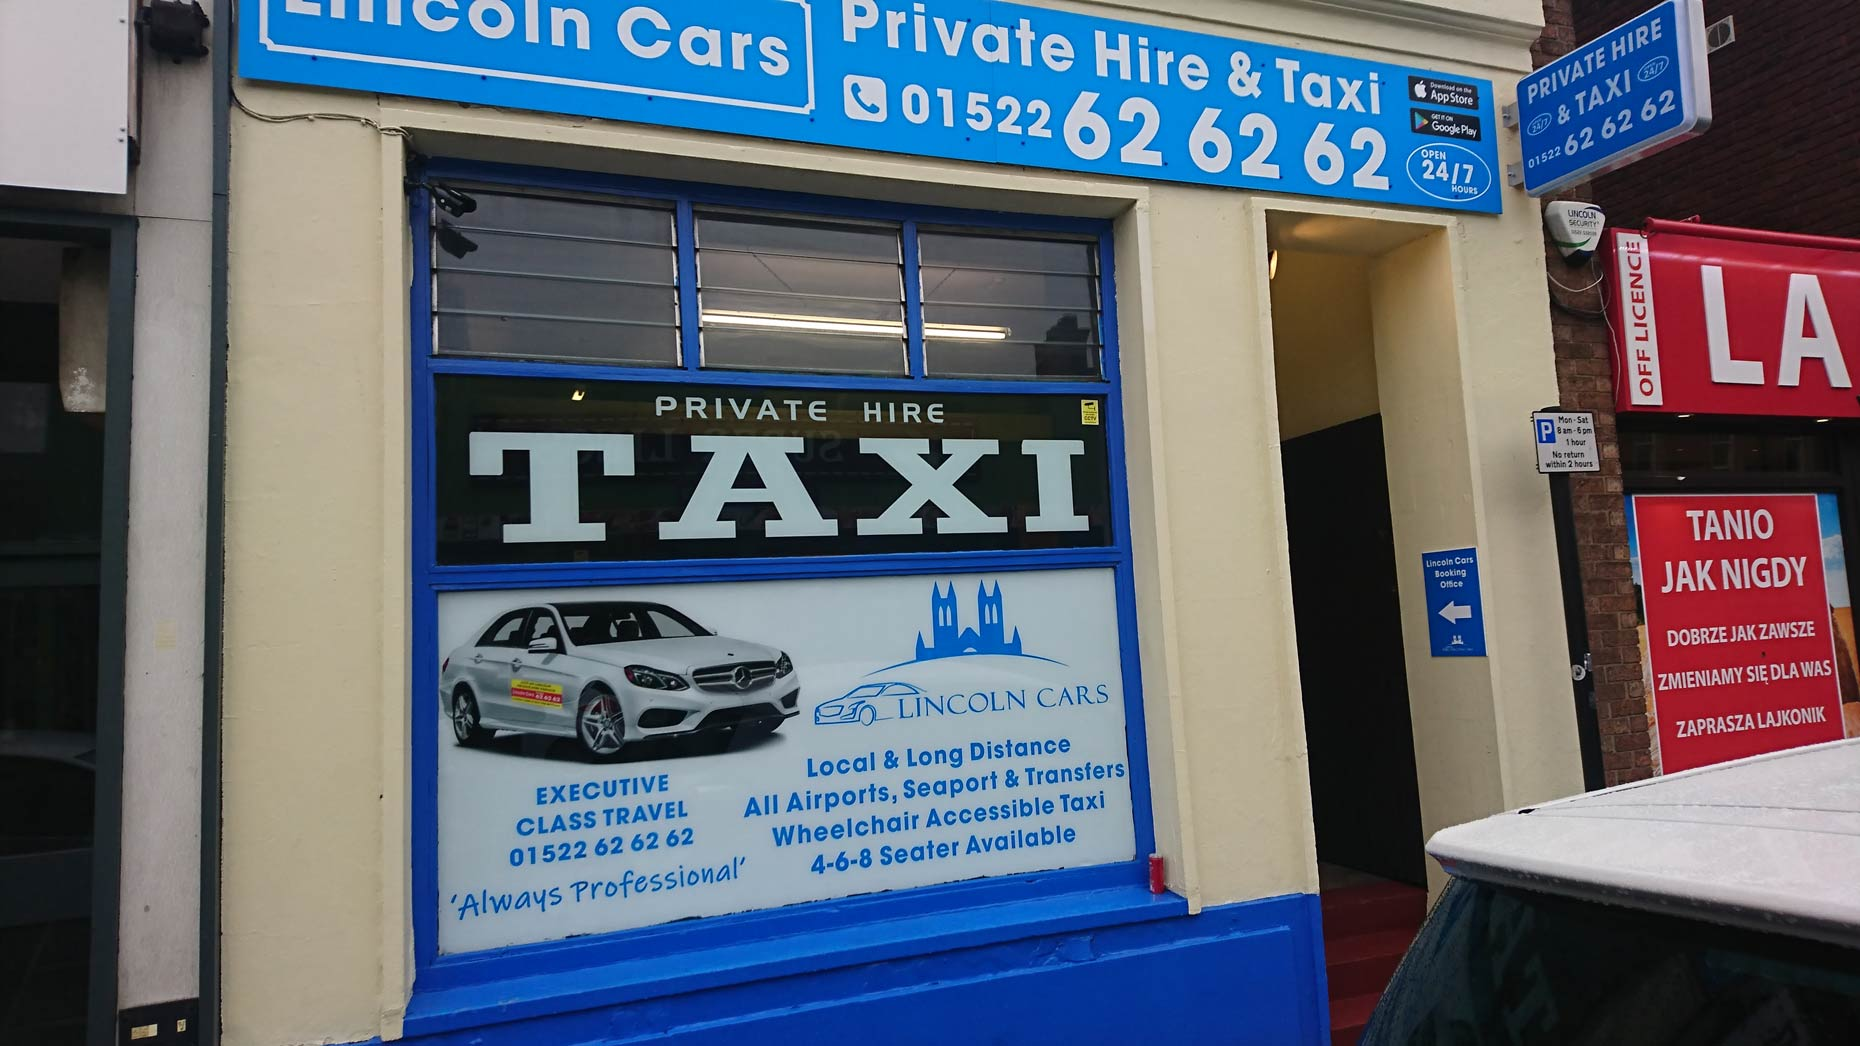 Today Only New Lincoln Taxi Firm Offers 99p Journeys